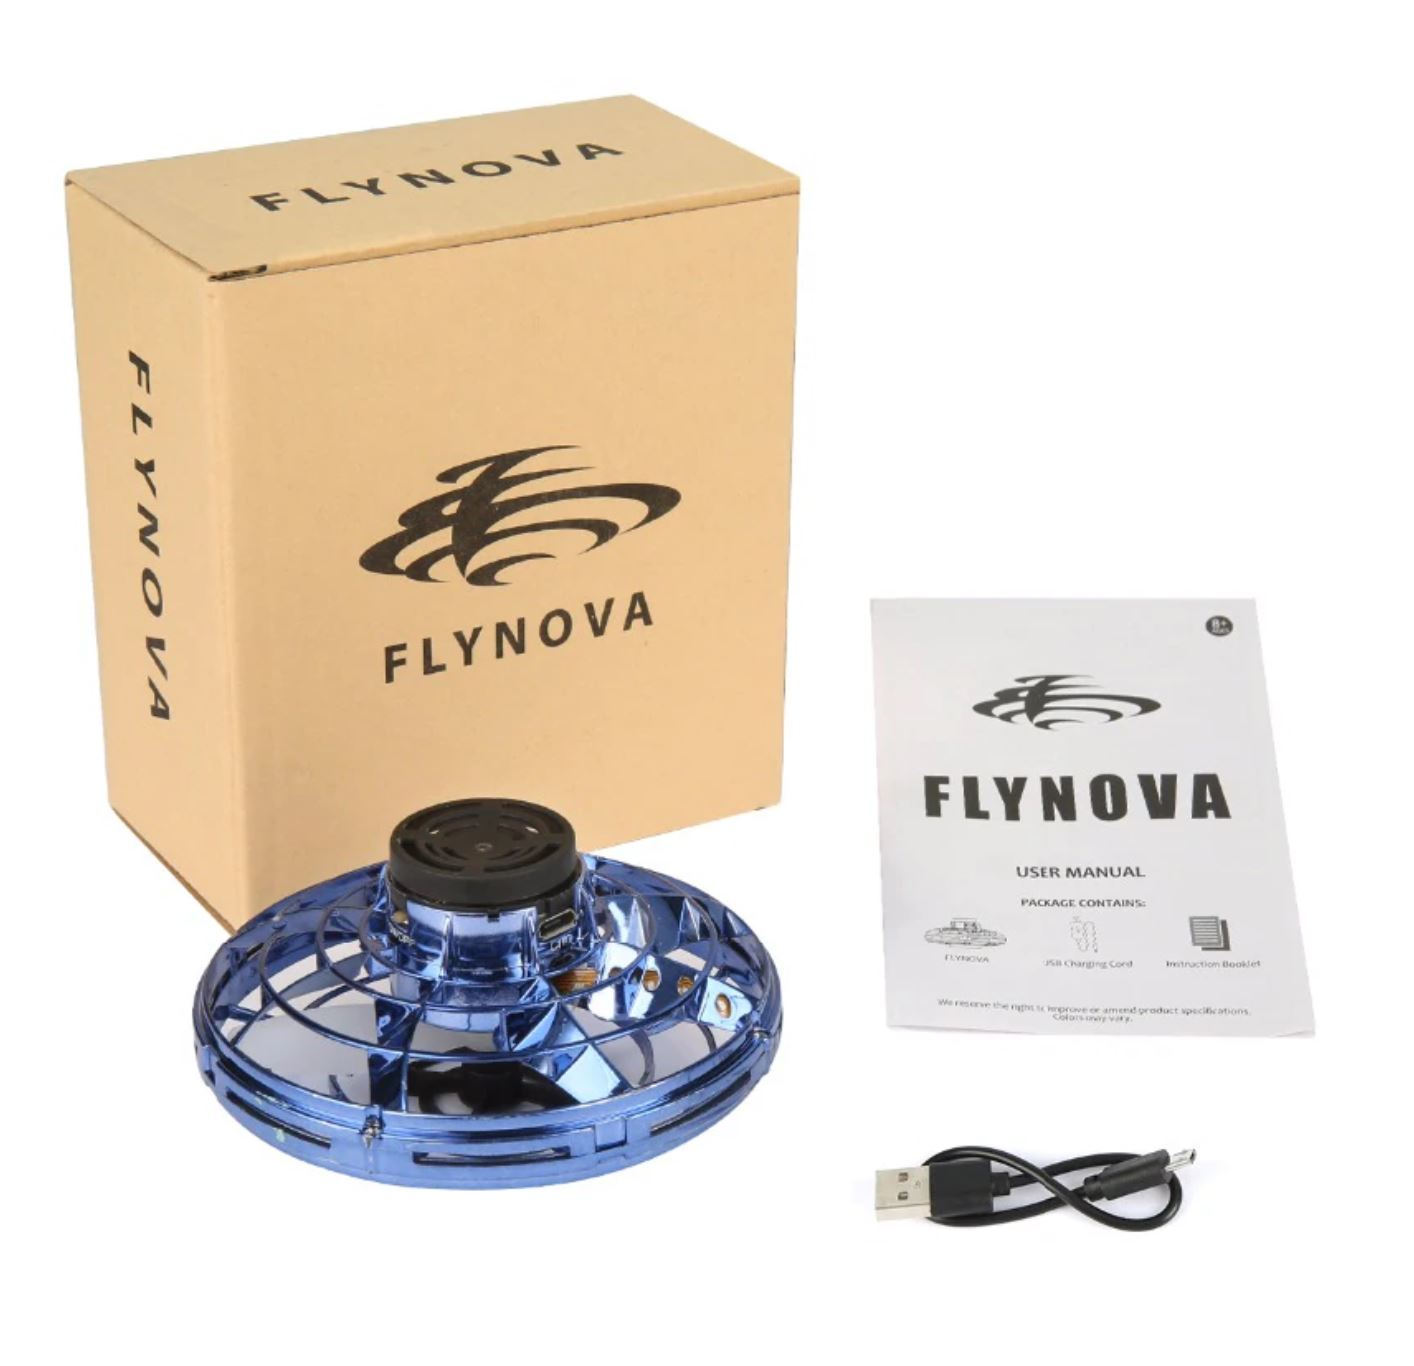 Flynova Flying Spinner Fidget Spinning Toy Gift for Kids Adults 2019